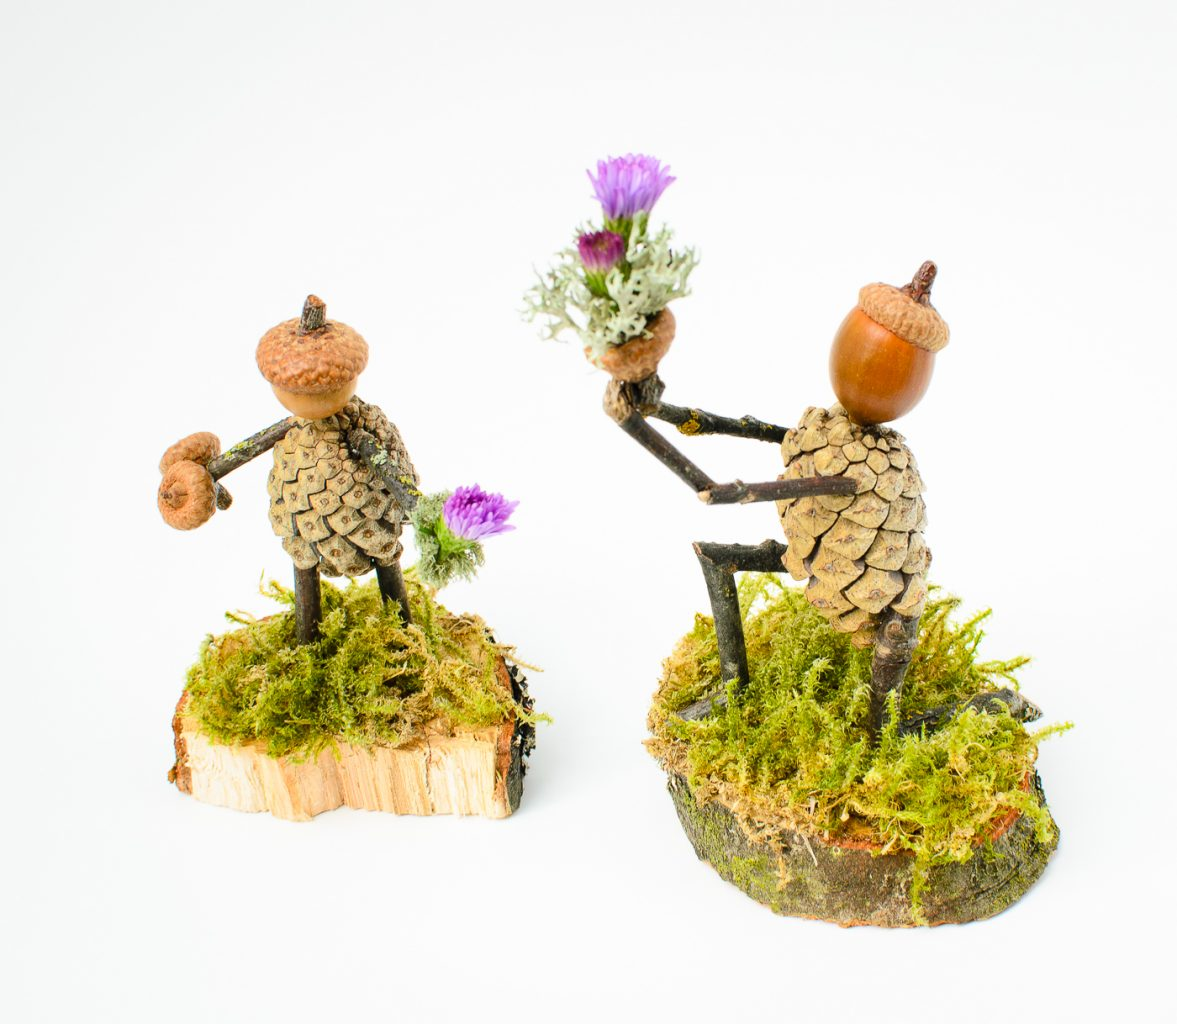 Small sculptures made from pinecones and acorns